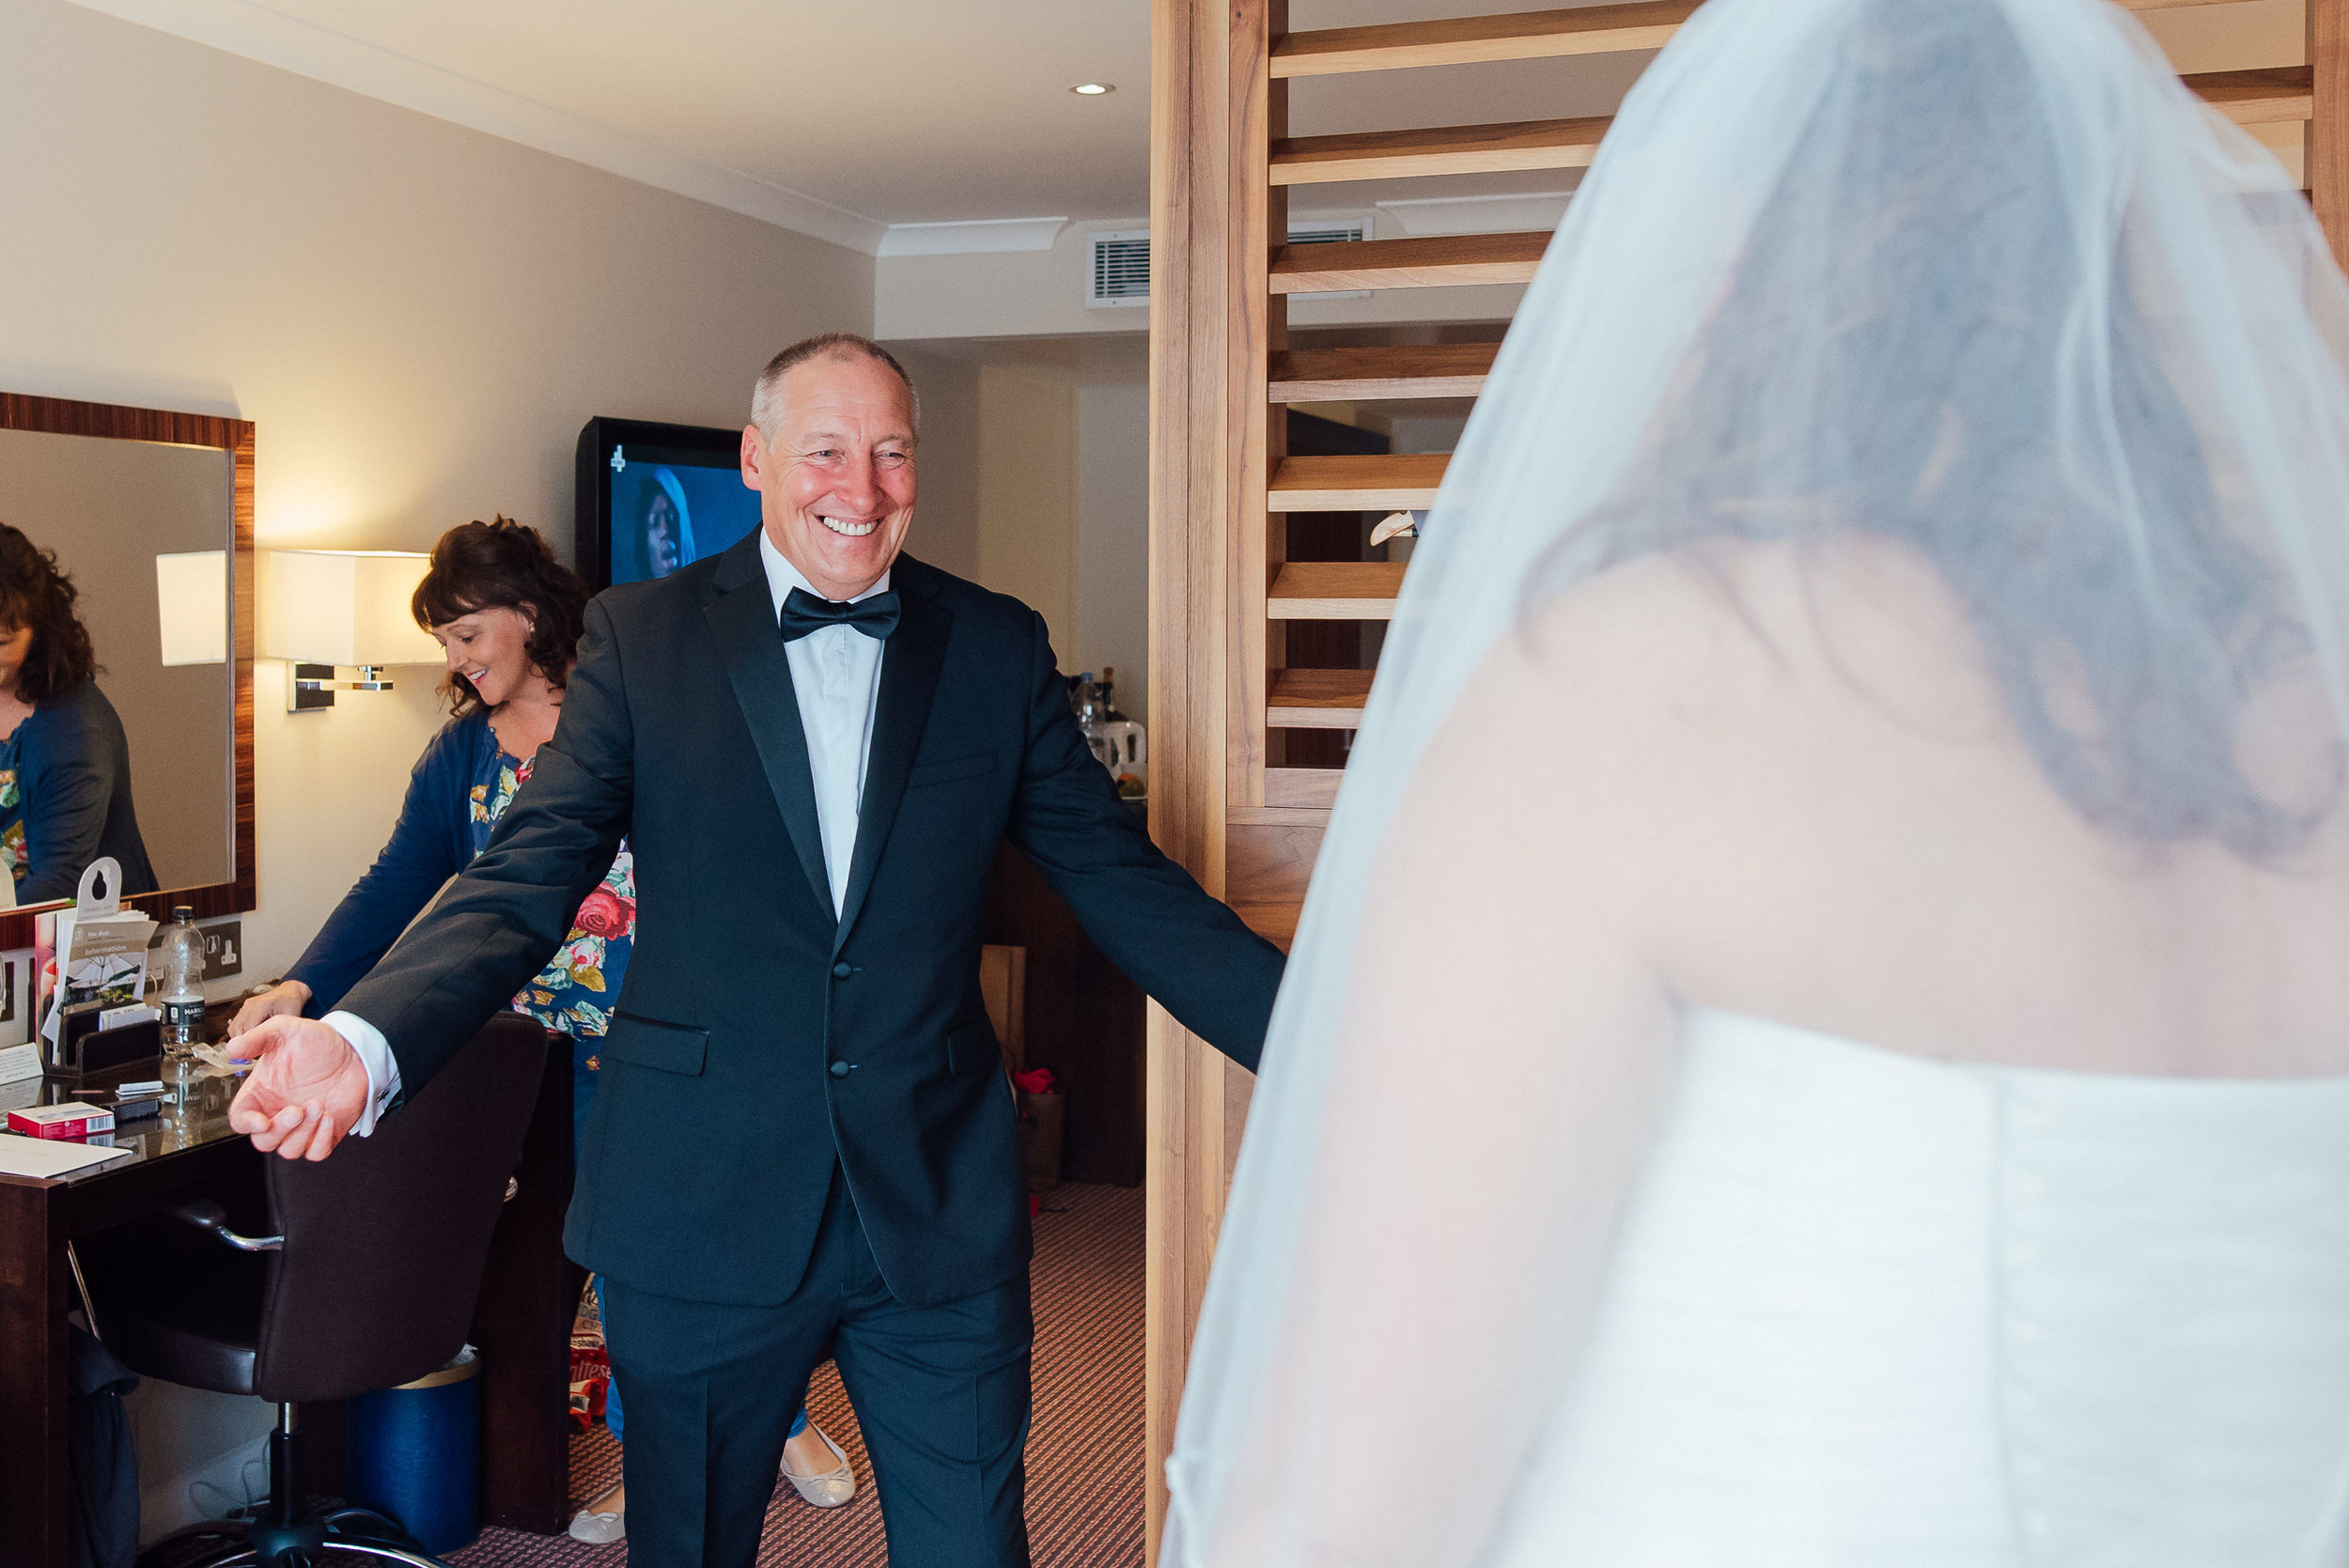 Heatherden hall wedding at Pinewood Studios - Amy James photography - Wedding photographer Hampshire - Documentary wedding photographer hampshire Surrey Berkshire